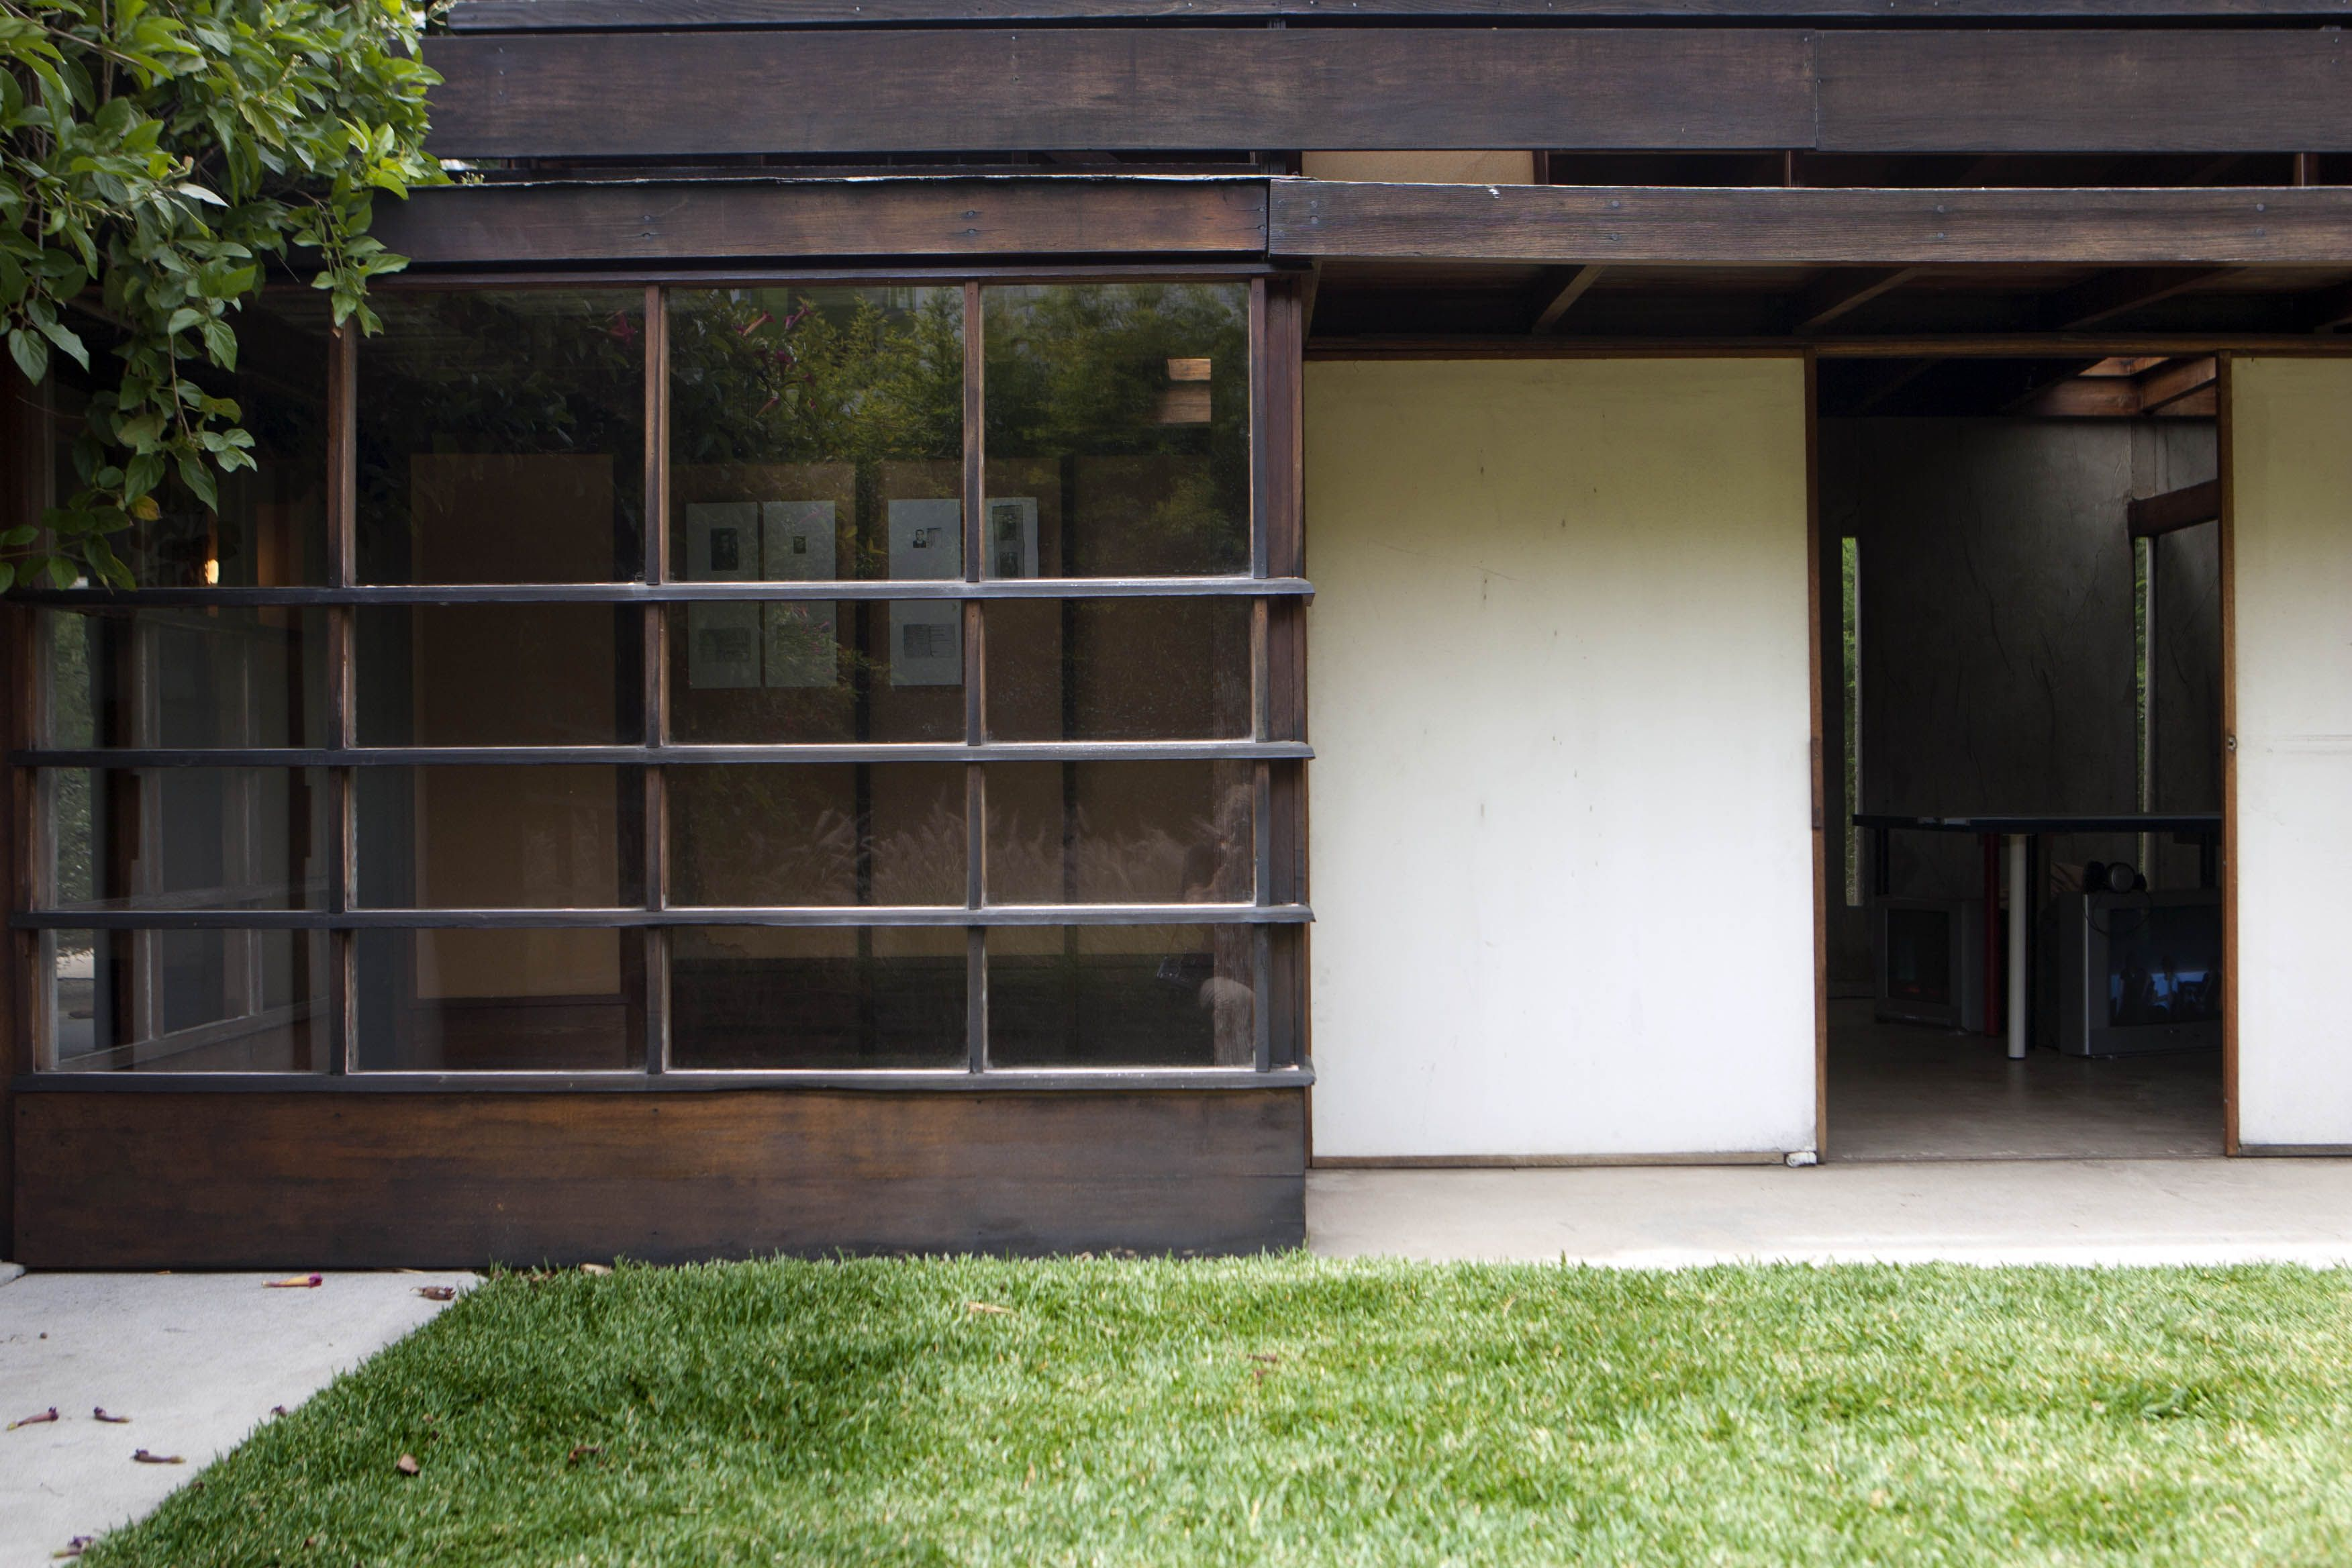 About The 1922 Schindler House In Southern California